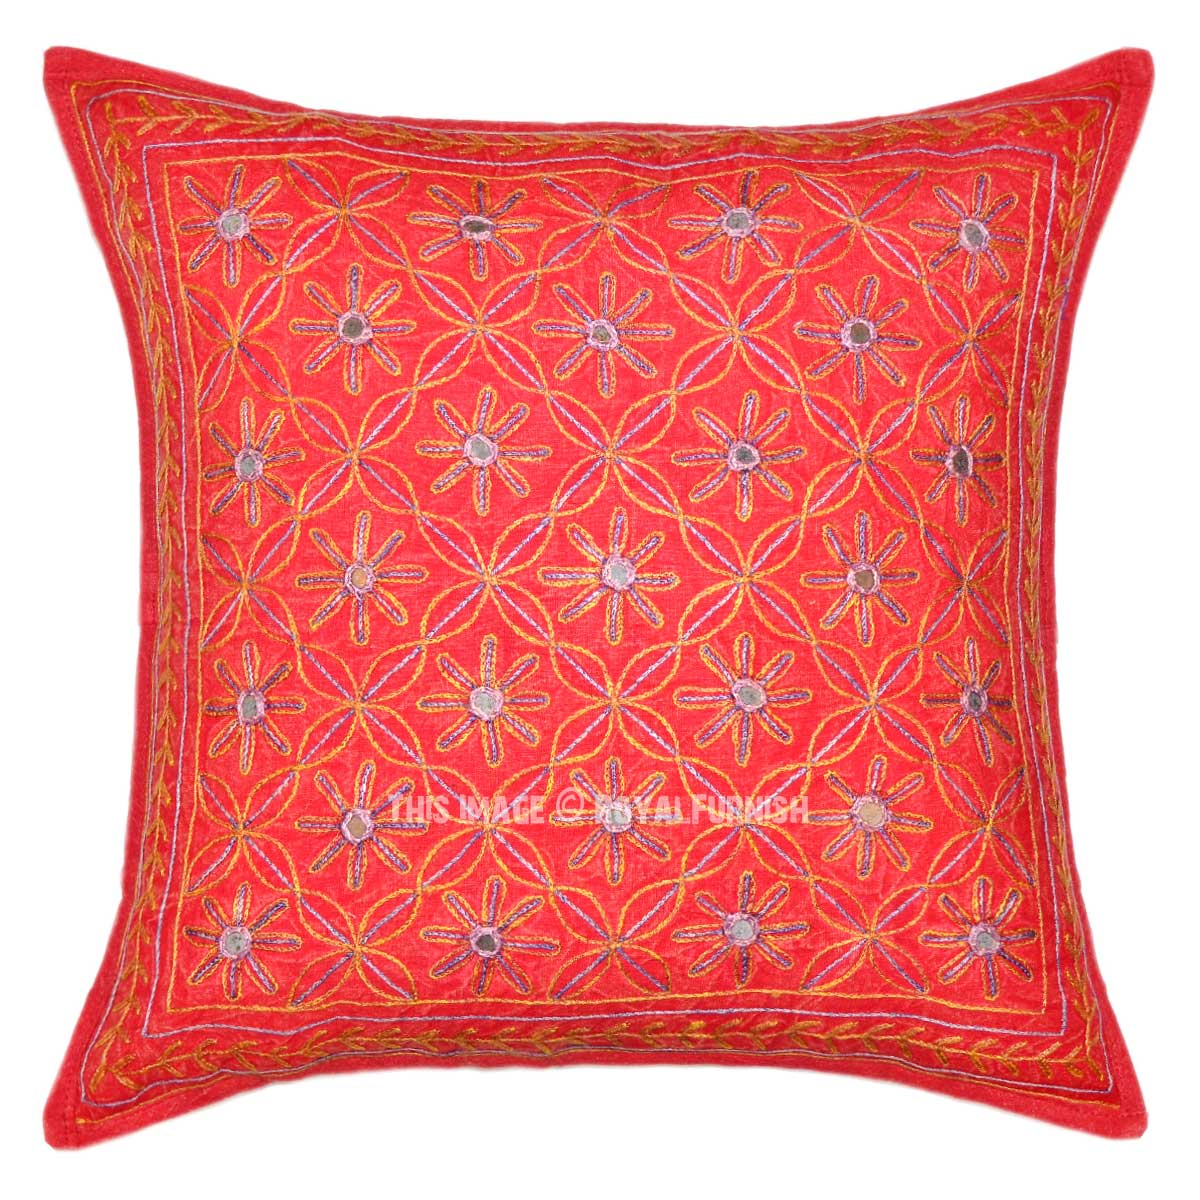 Unique Decorative Accent Pillows : Red 16X16 Decorative One-Of-A-Kind Unique Embroidered Pillow Cover - RoyalFurnish.com